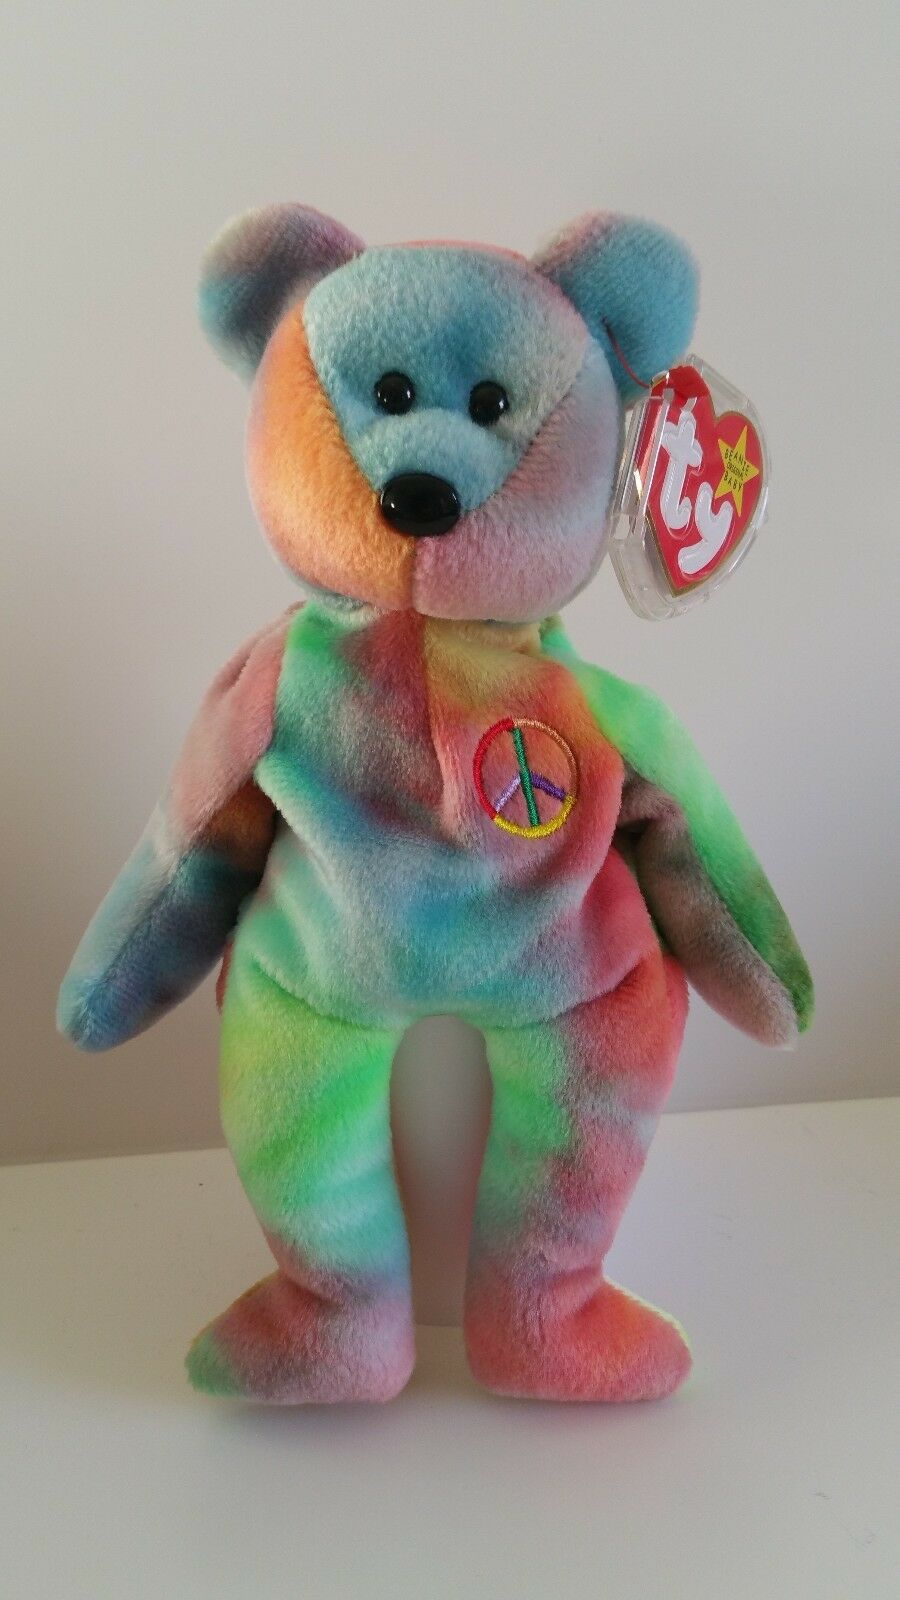 TY Peace Bear ,Retired - Made in Indonesia 1996 - Mint Condition - bb b 22p